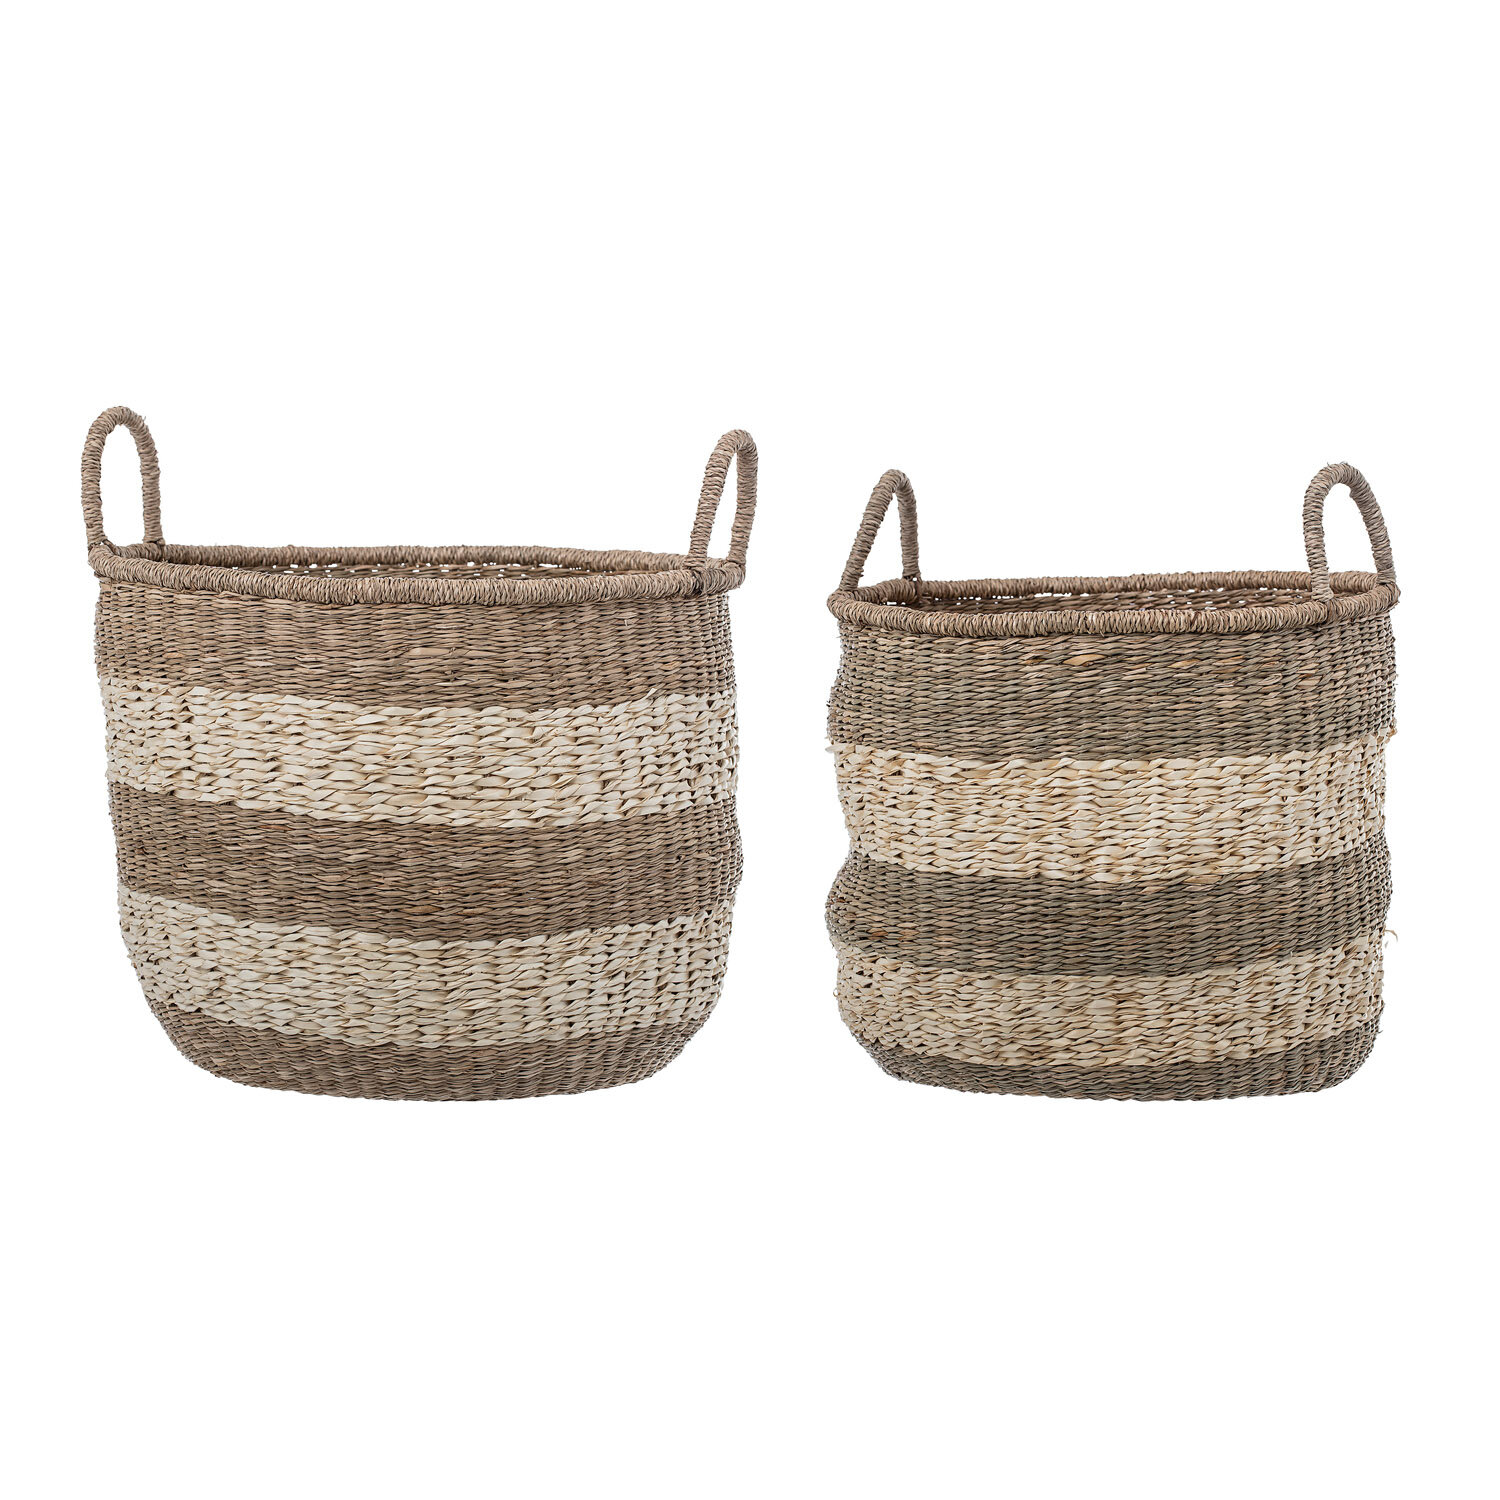 Natural Seagrass Wicker 2 Piece Basket Set with Handles | Joss & Main